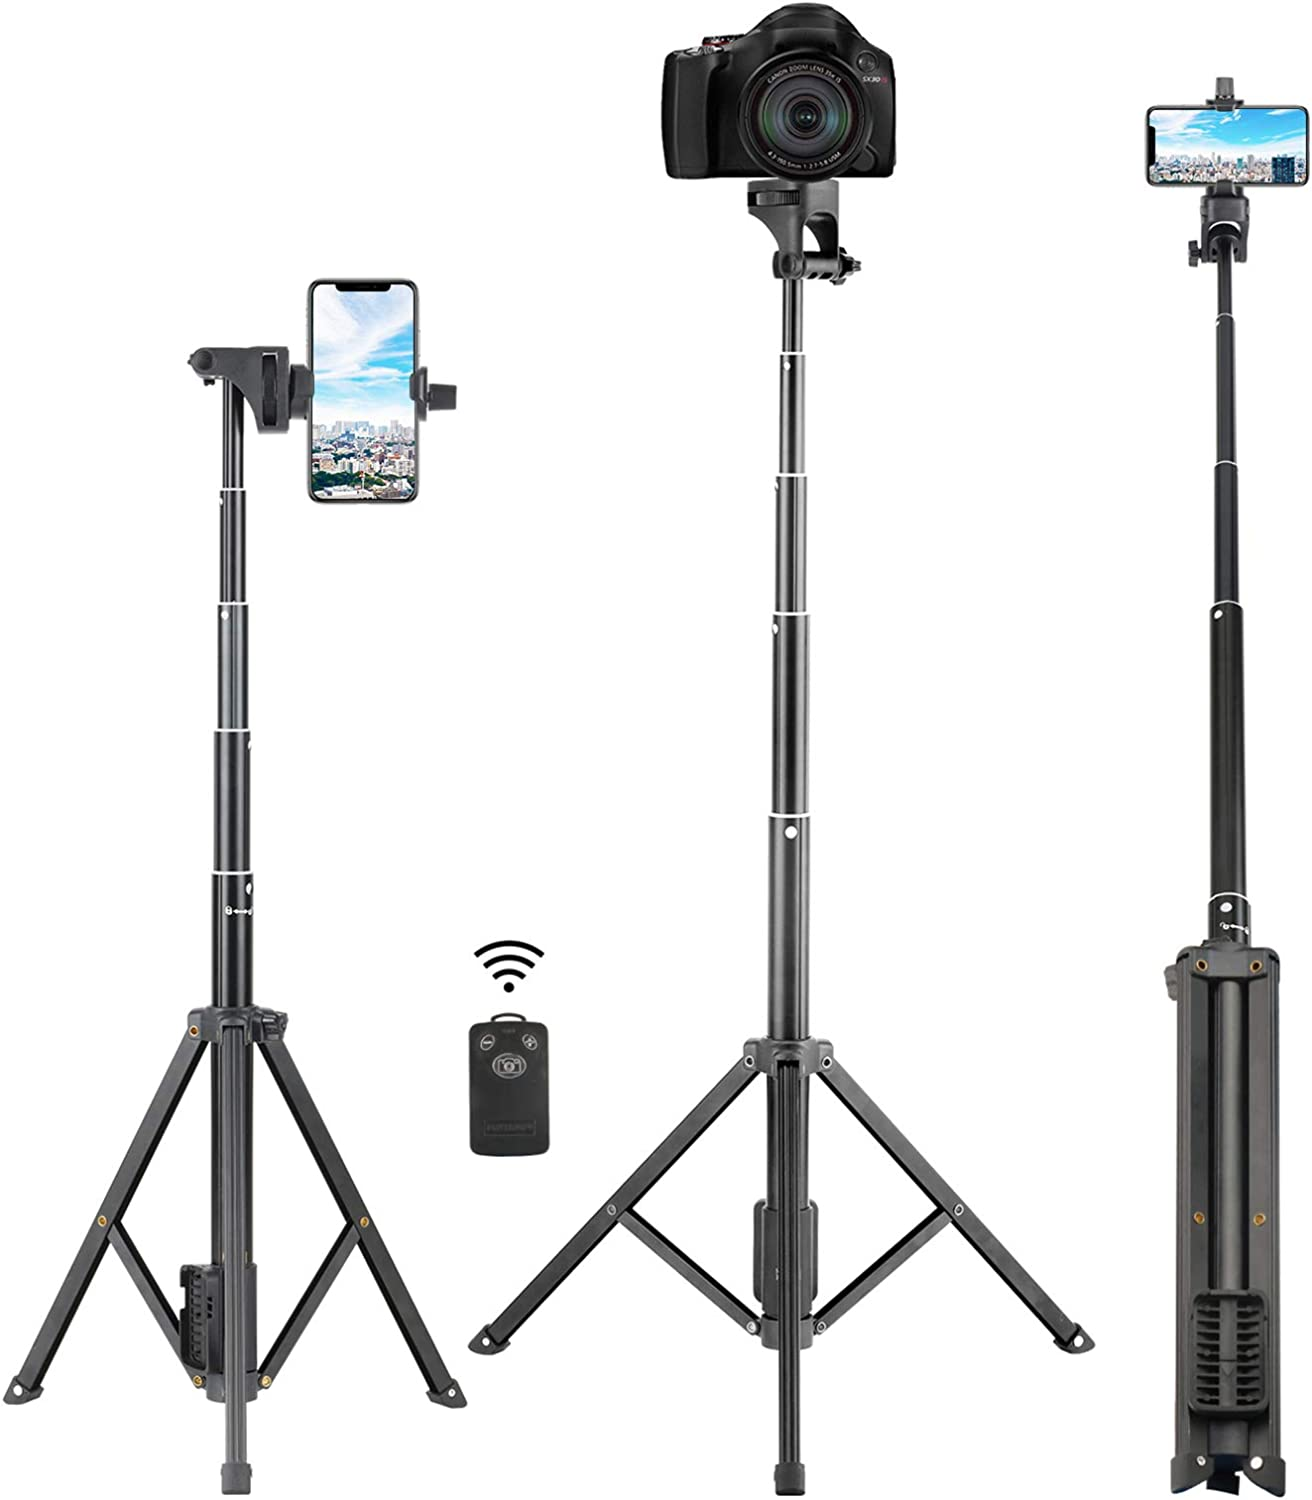 Selfie Stick Tripod, Eocean 54'' Extendable Selfie Stick with Phone Tripod Stand & Wireless Remote for iPhone SE 11 Pro Max X 8 7 6 Galaxy Note 9 Android, Perfect for Live Stream/Vlog, Lightweight